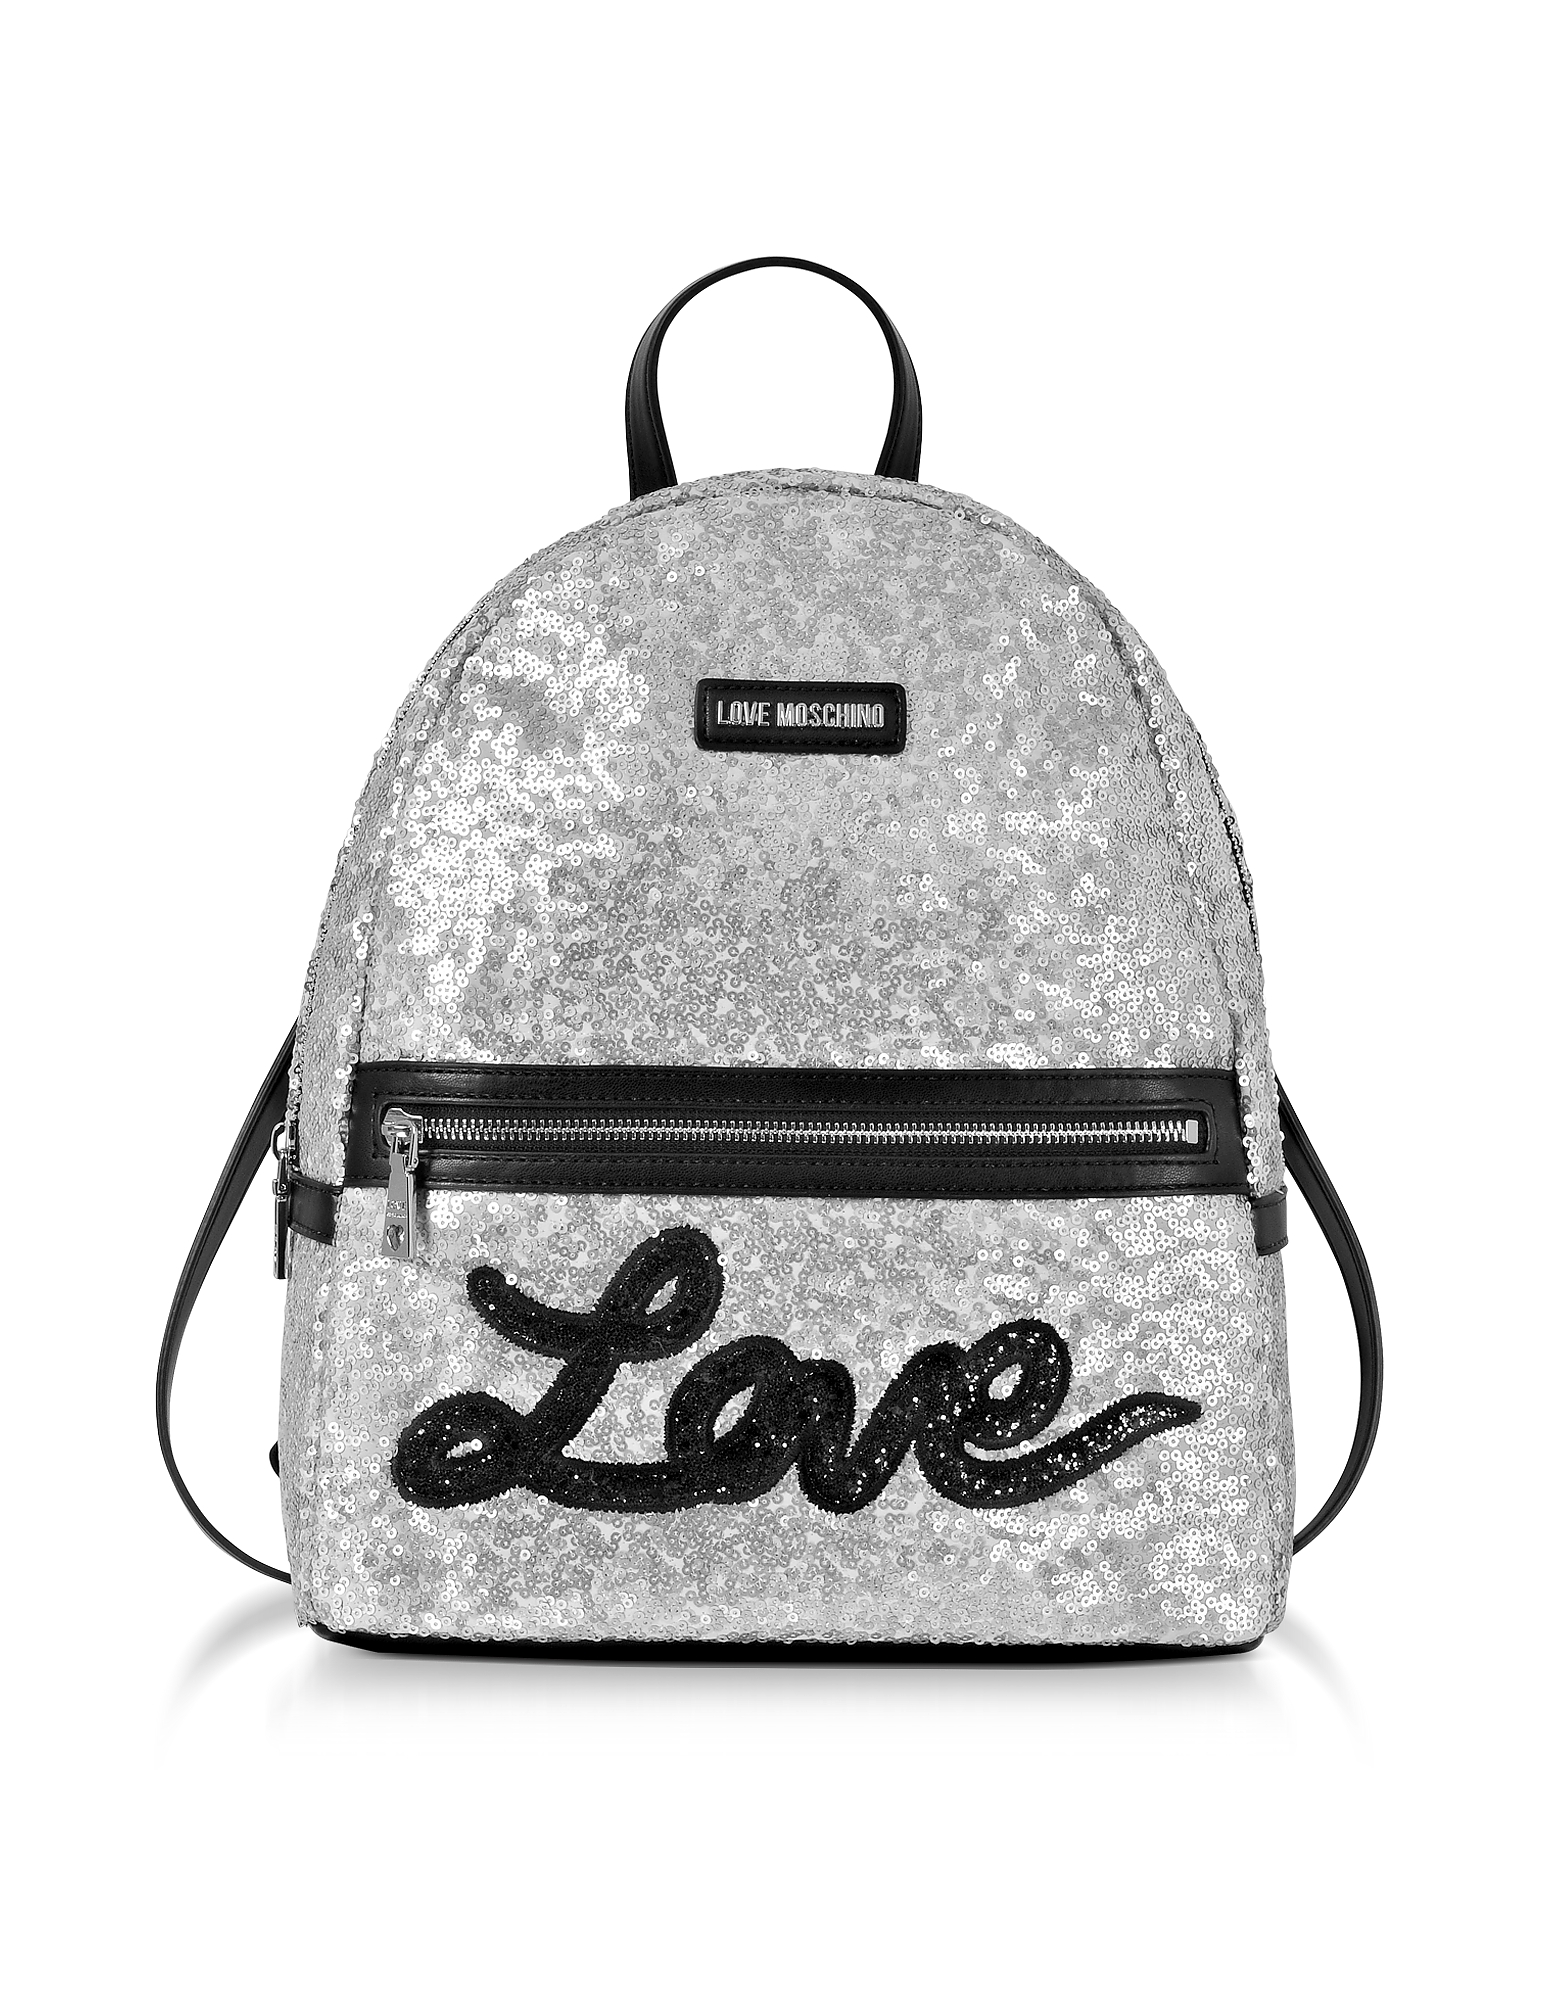 Love Moschino Handbags, Love Sequins Metallic Silver Backpack